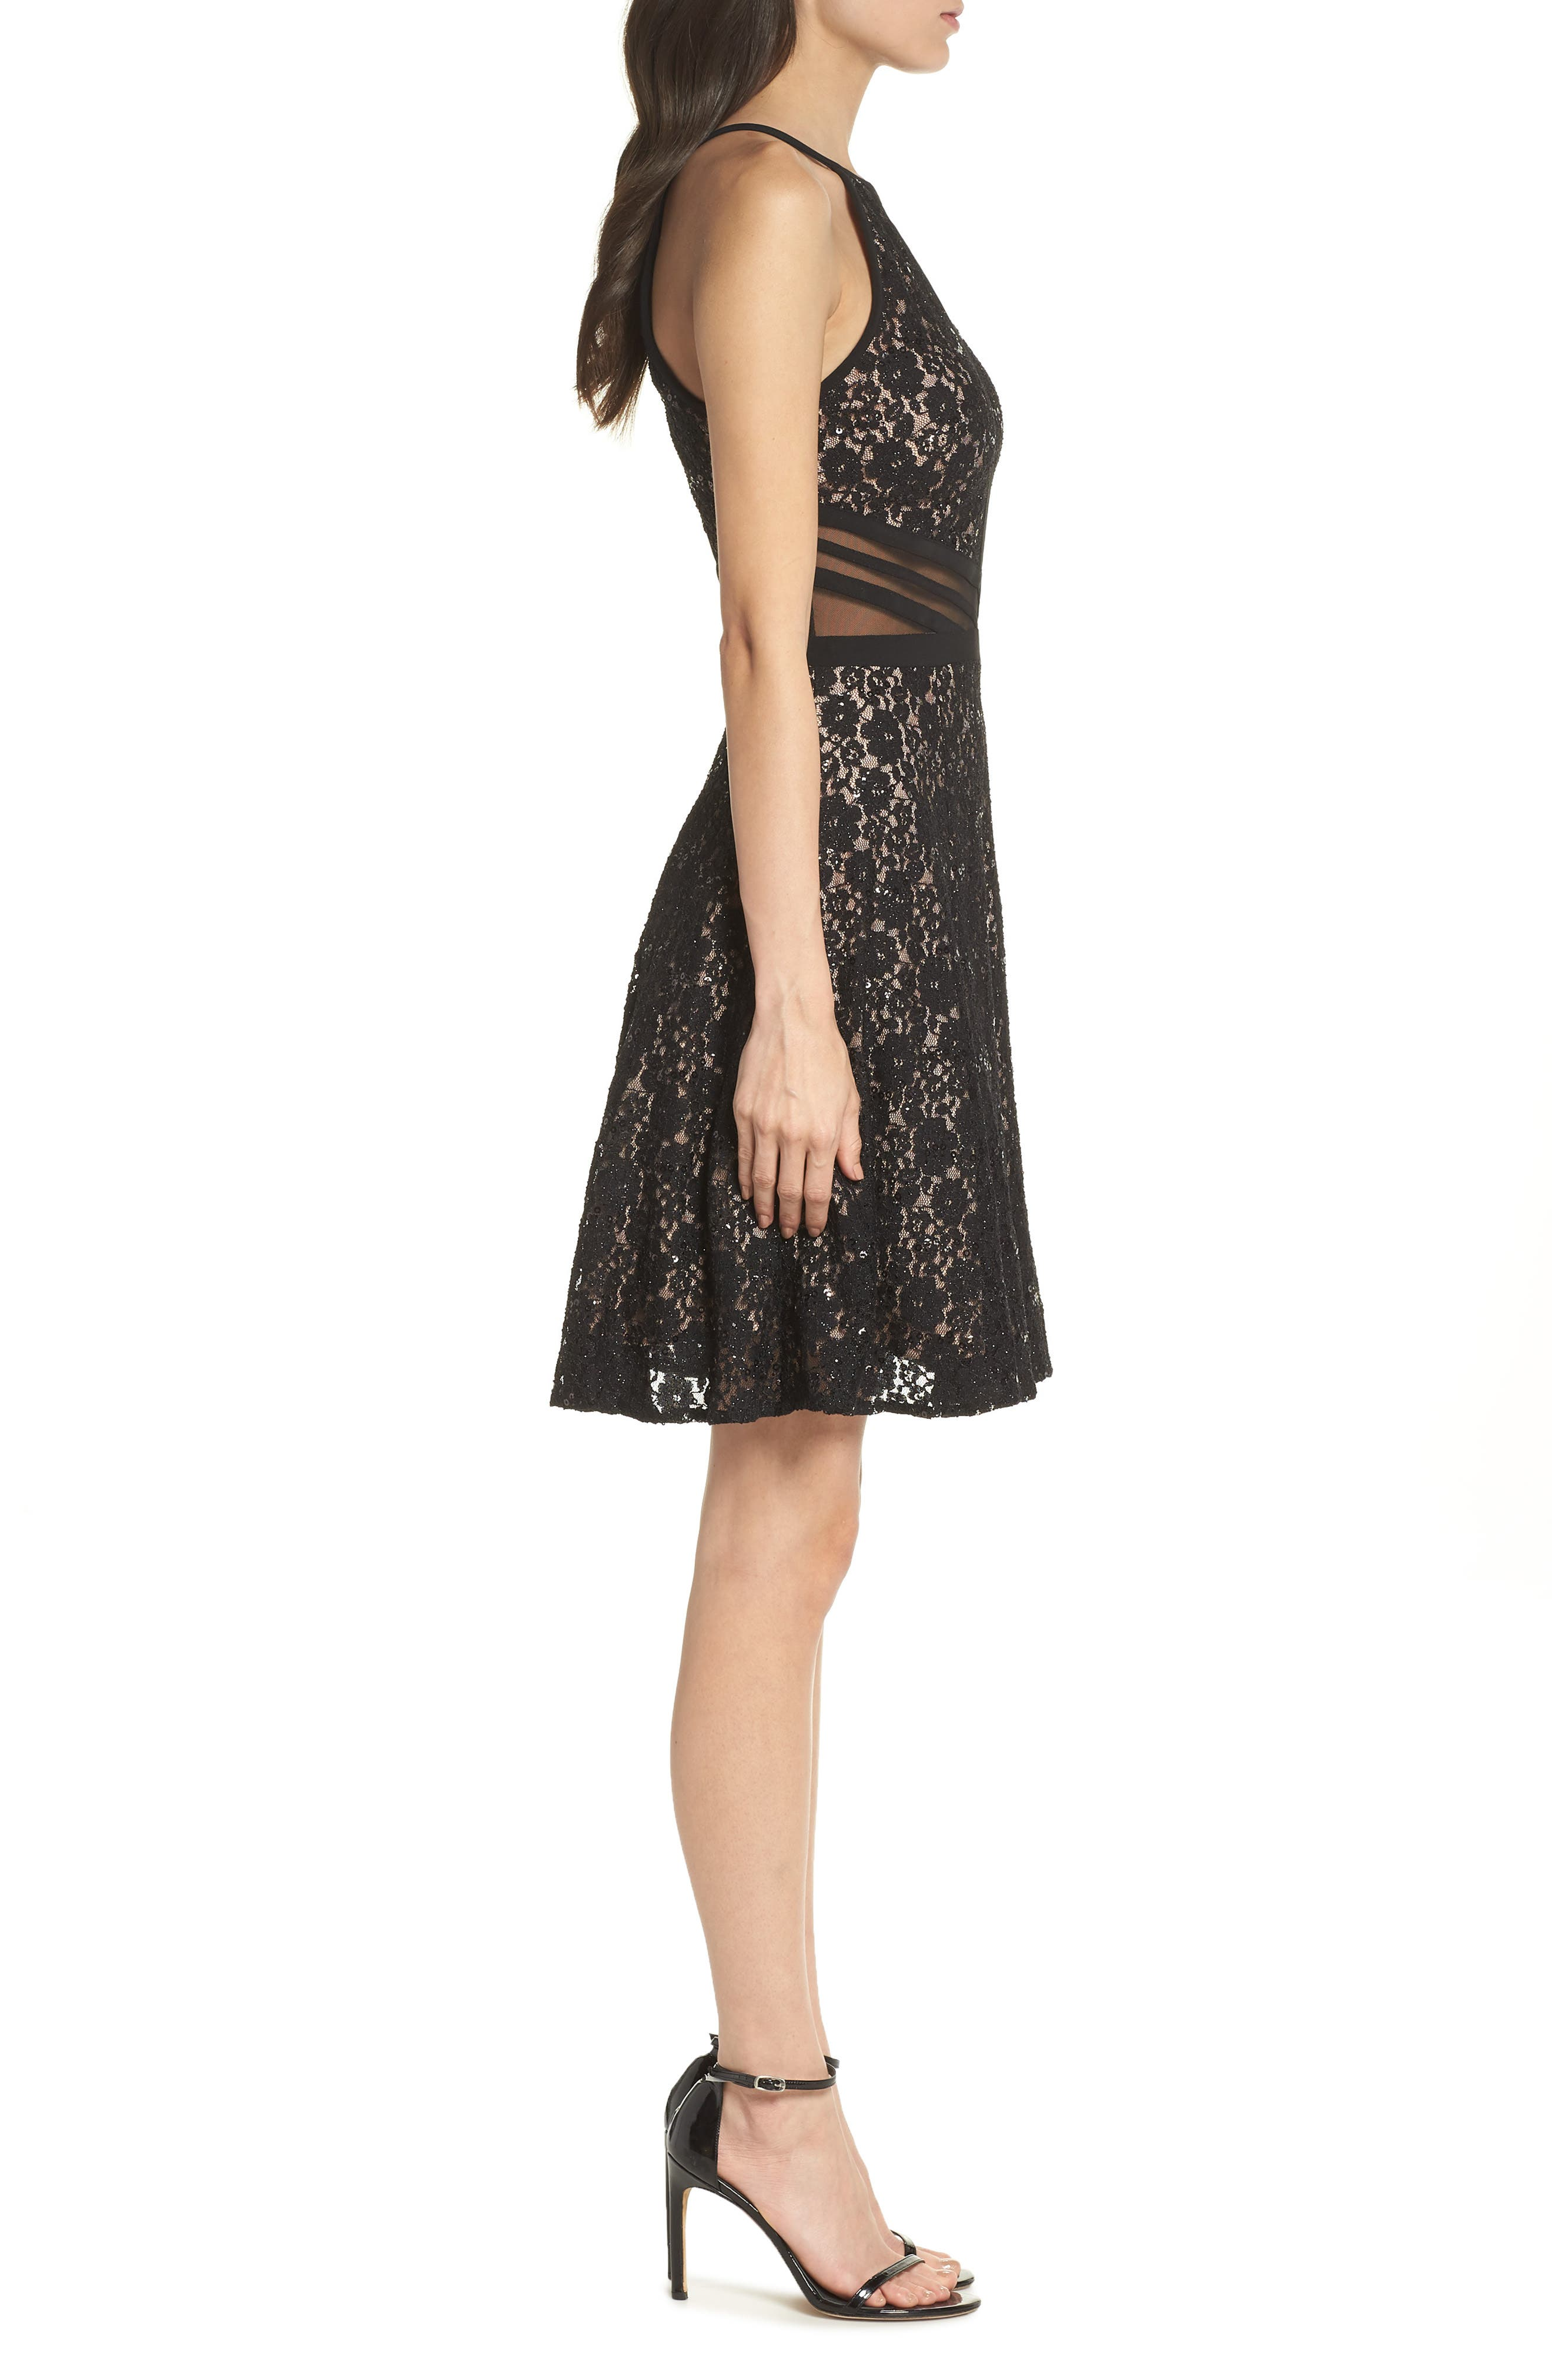 MORGAN & CO., Sheer Inset Lace Fit & Flare Dress, Alternate thumbnail 4, color, BLACK/ NUDE